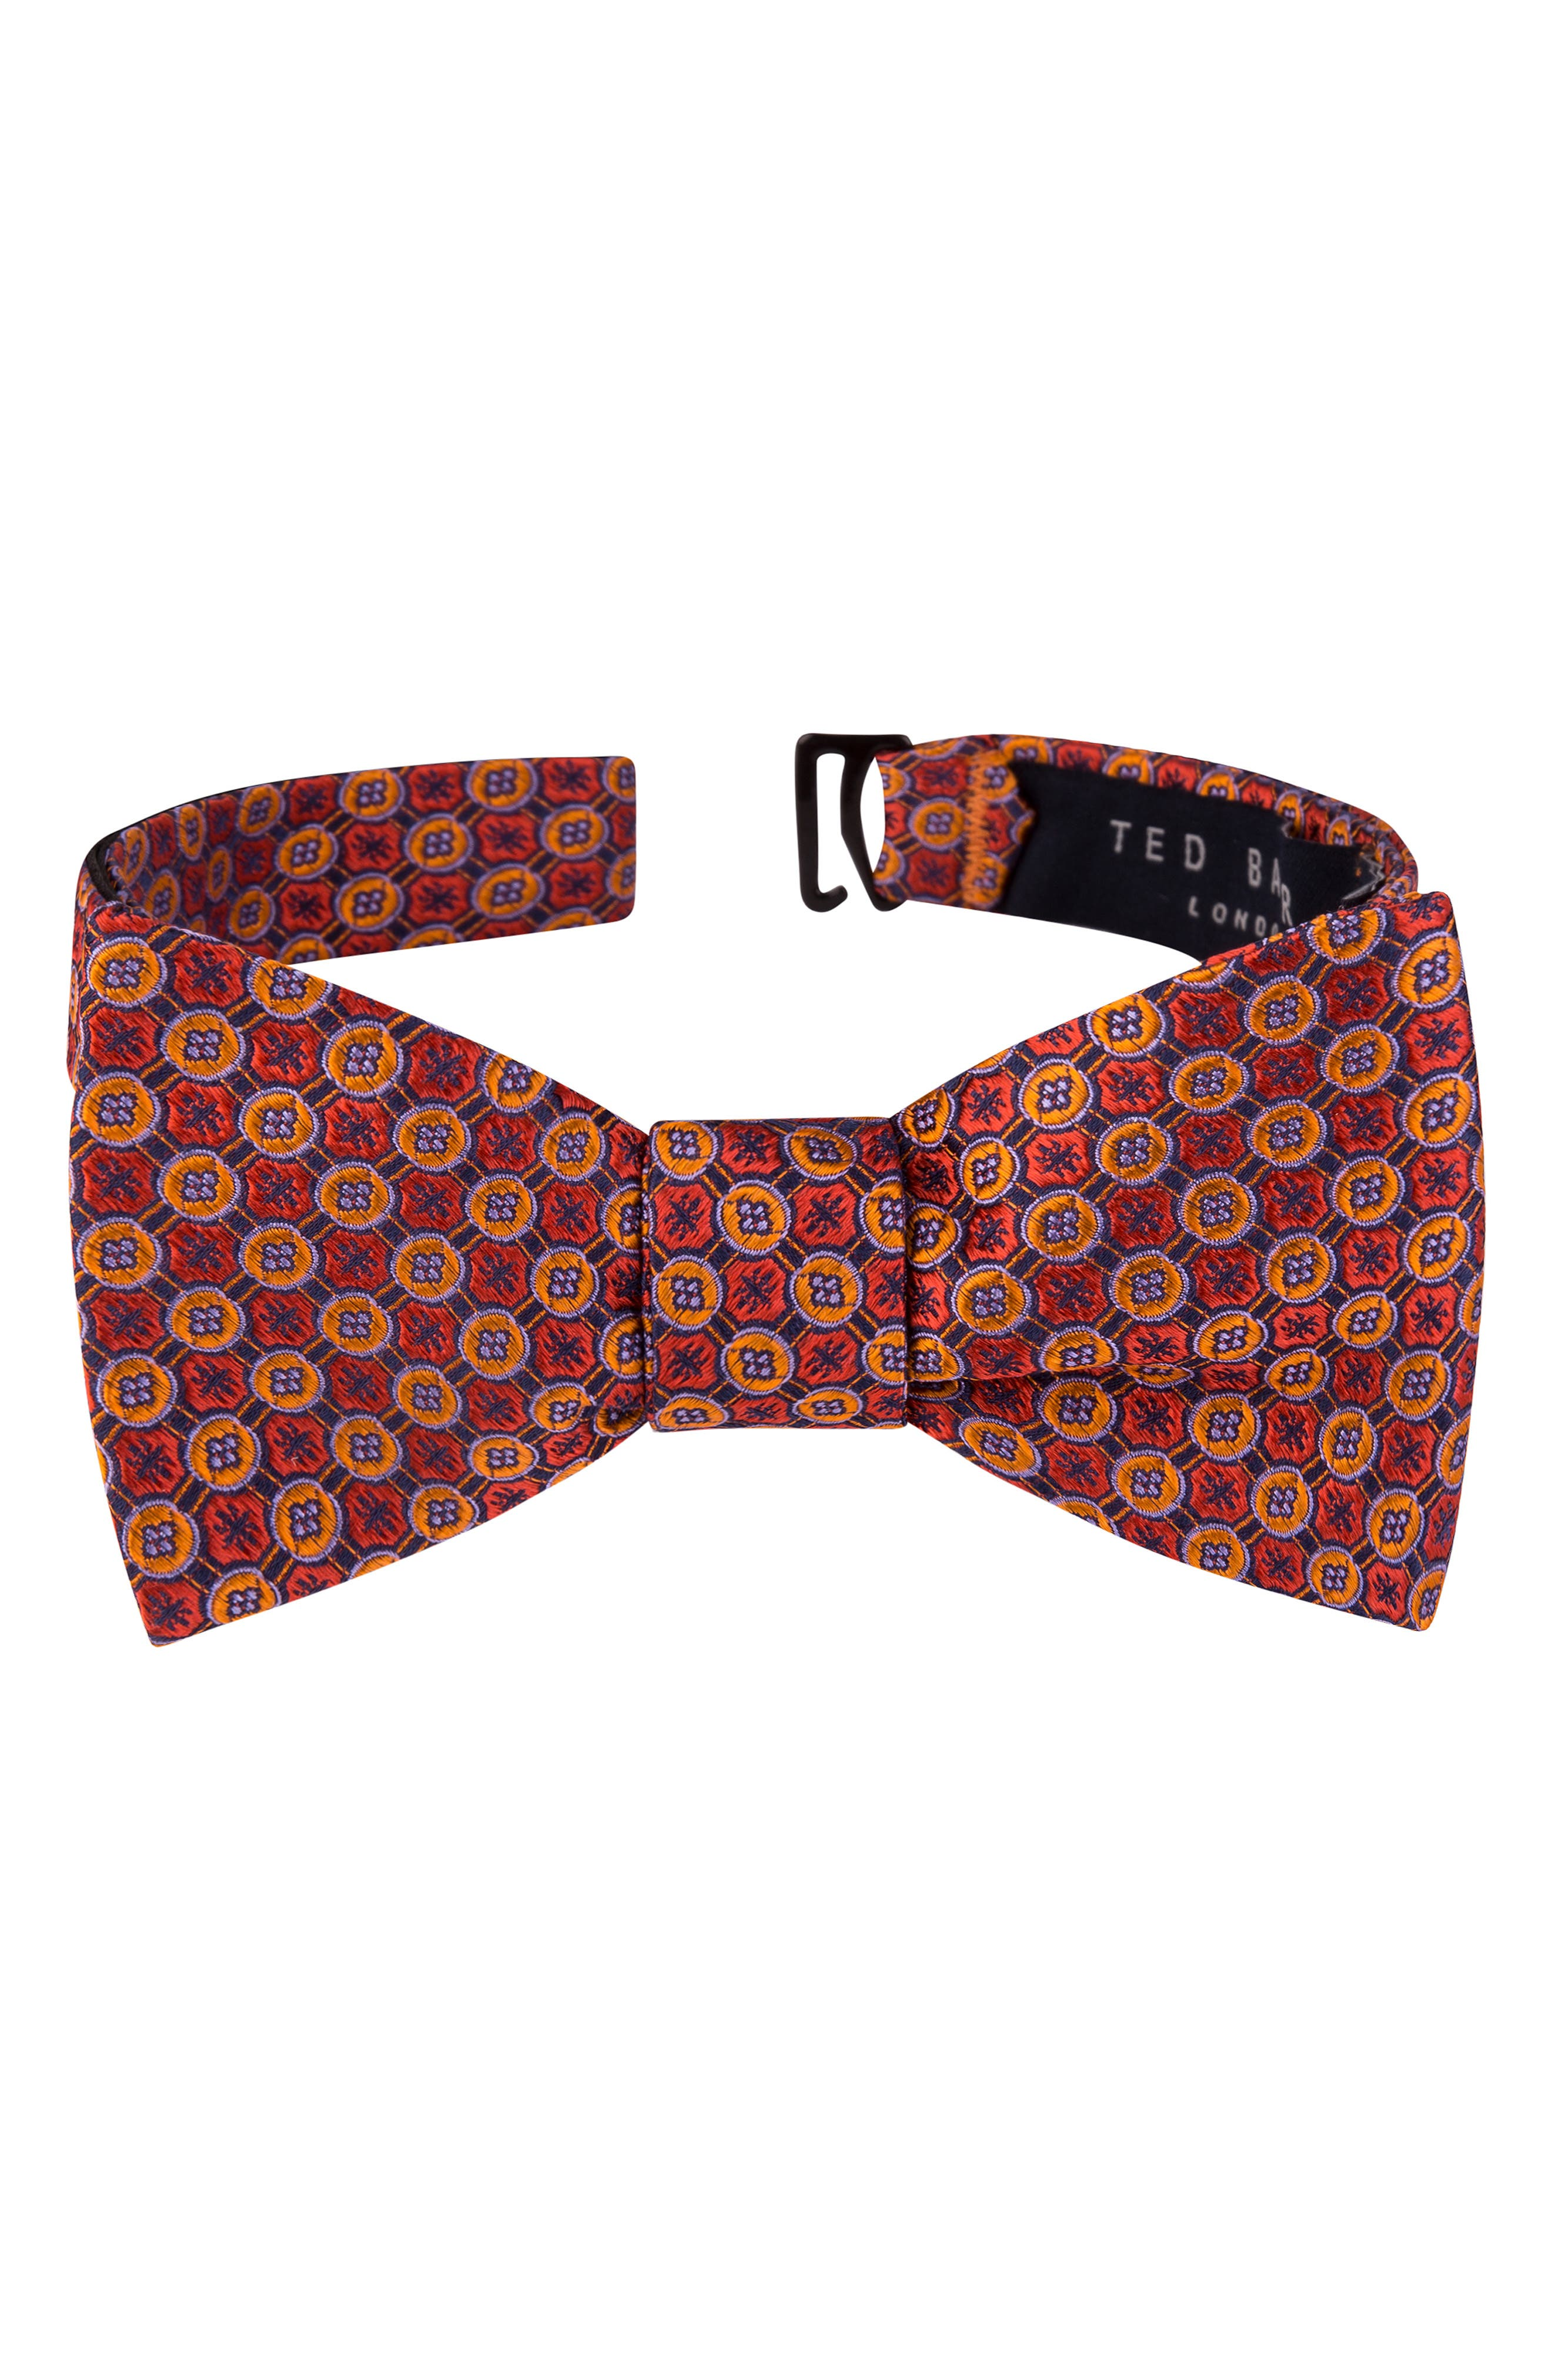 Men's 1920s Style Ties, Neck Ties & Bowties Mens Ted Baker London Geometric Silk Bow Tie Size One Size - Orange $59.50 AT vintagedancer.com